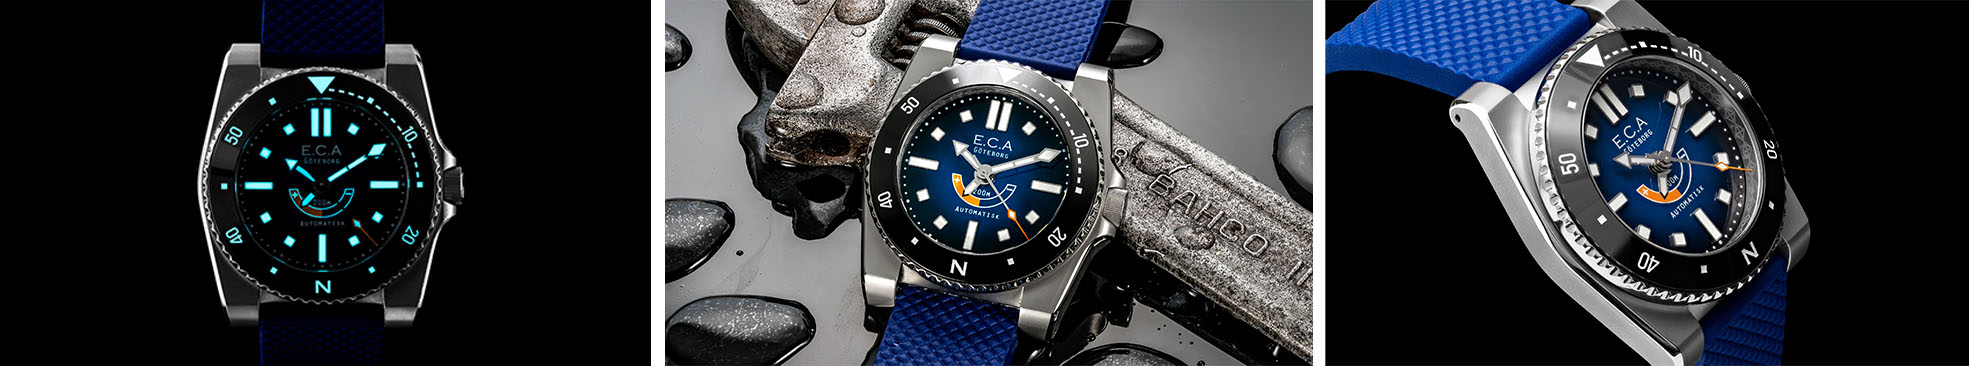 E.C.Andersson Calypso Blue watch details banner